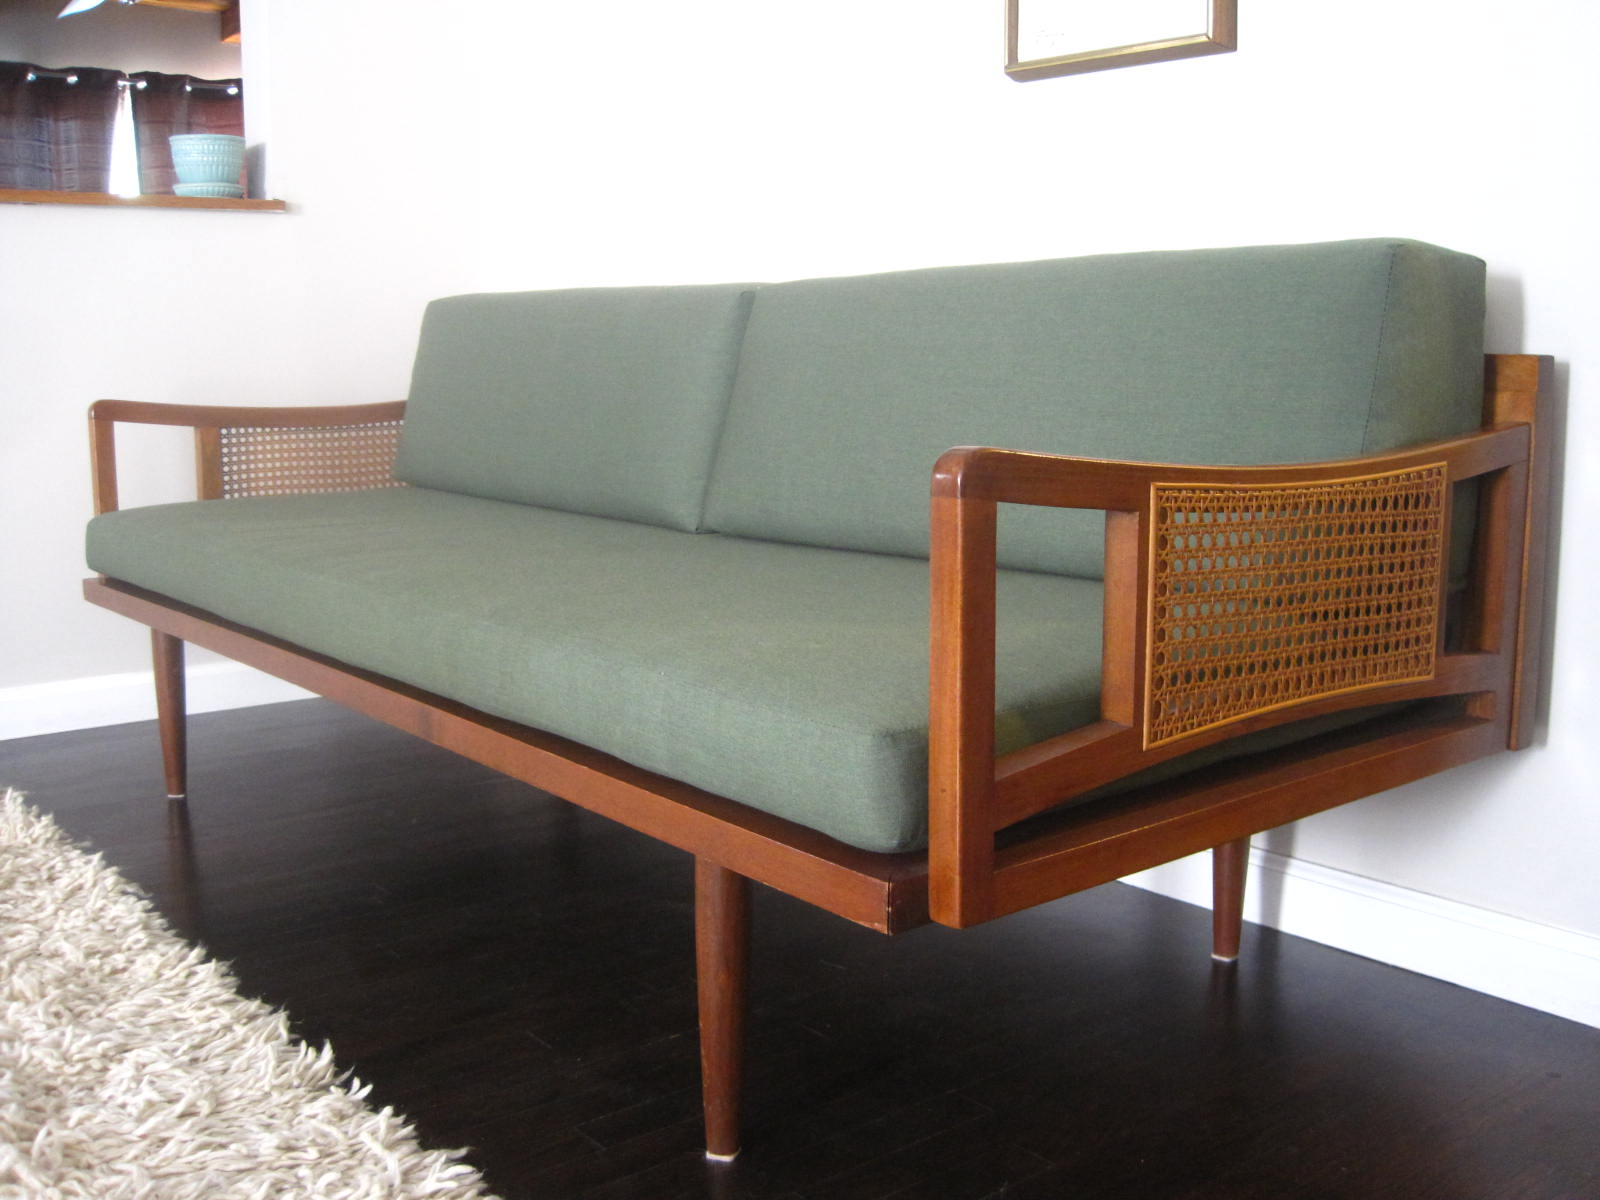 Image of: mid century sofa design